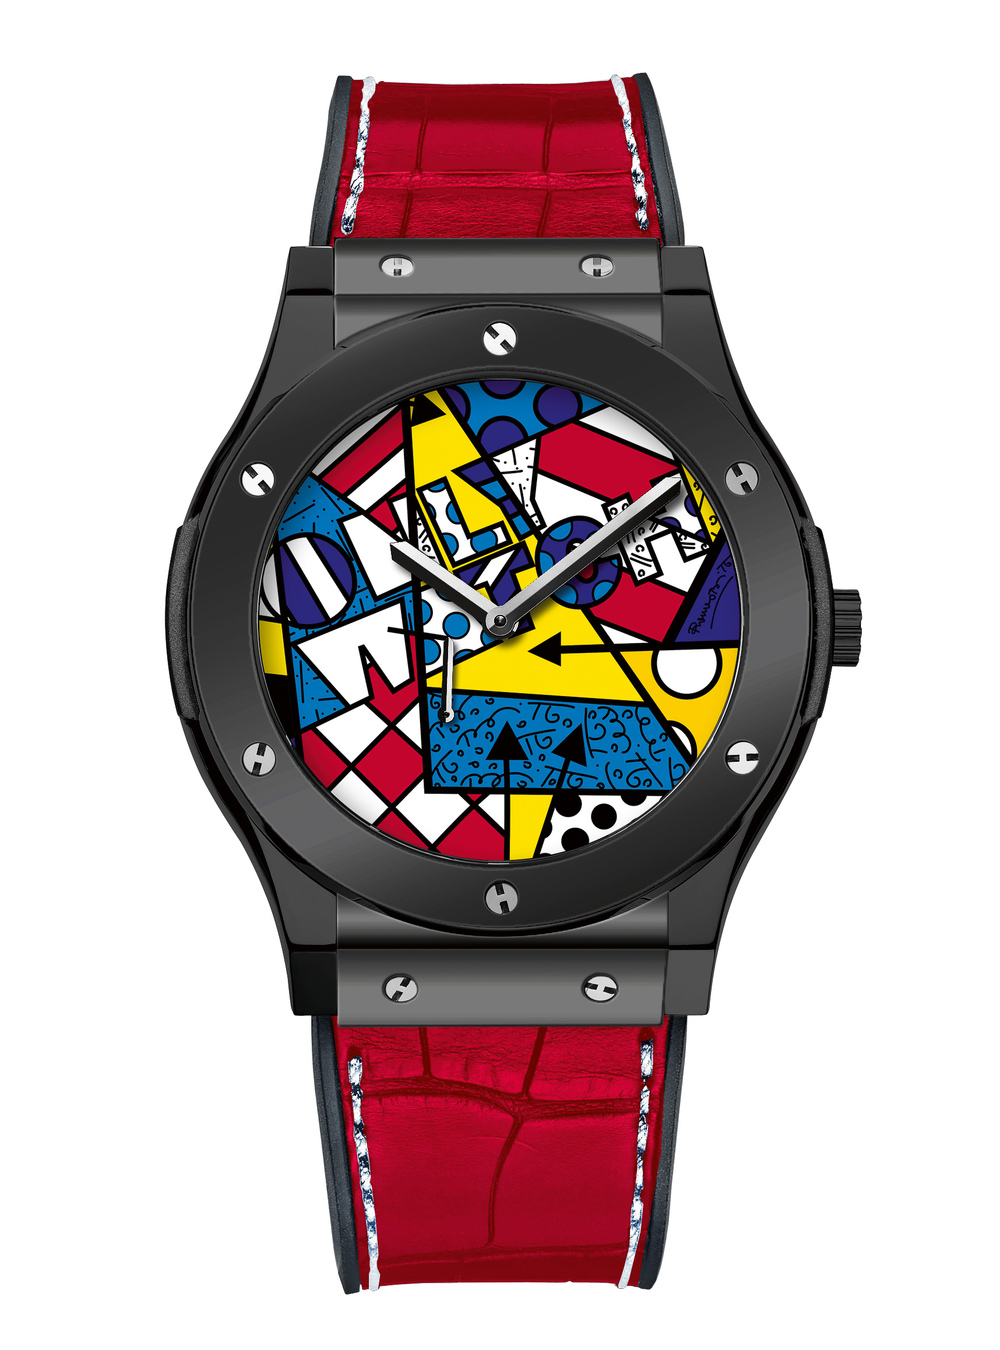 The Hublot Classic Fusion Only Watch Britto, featuring a colourful Grand Feu dial.